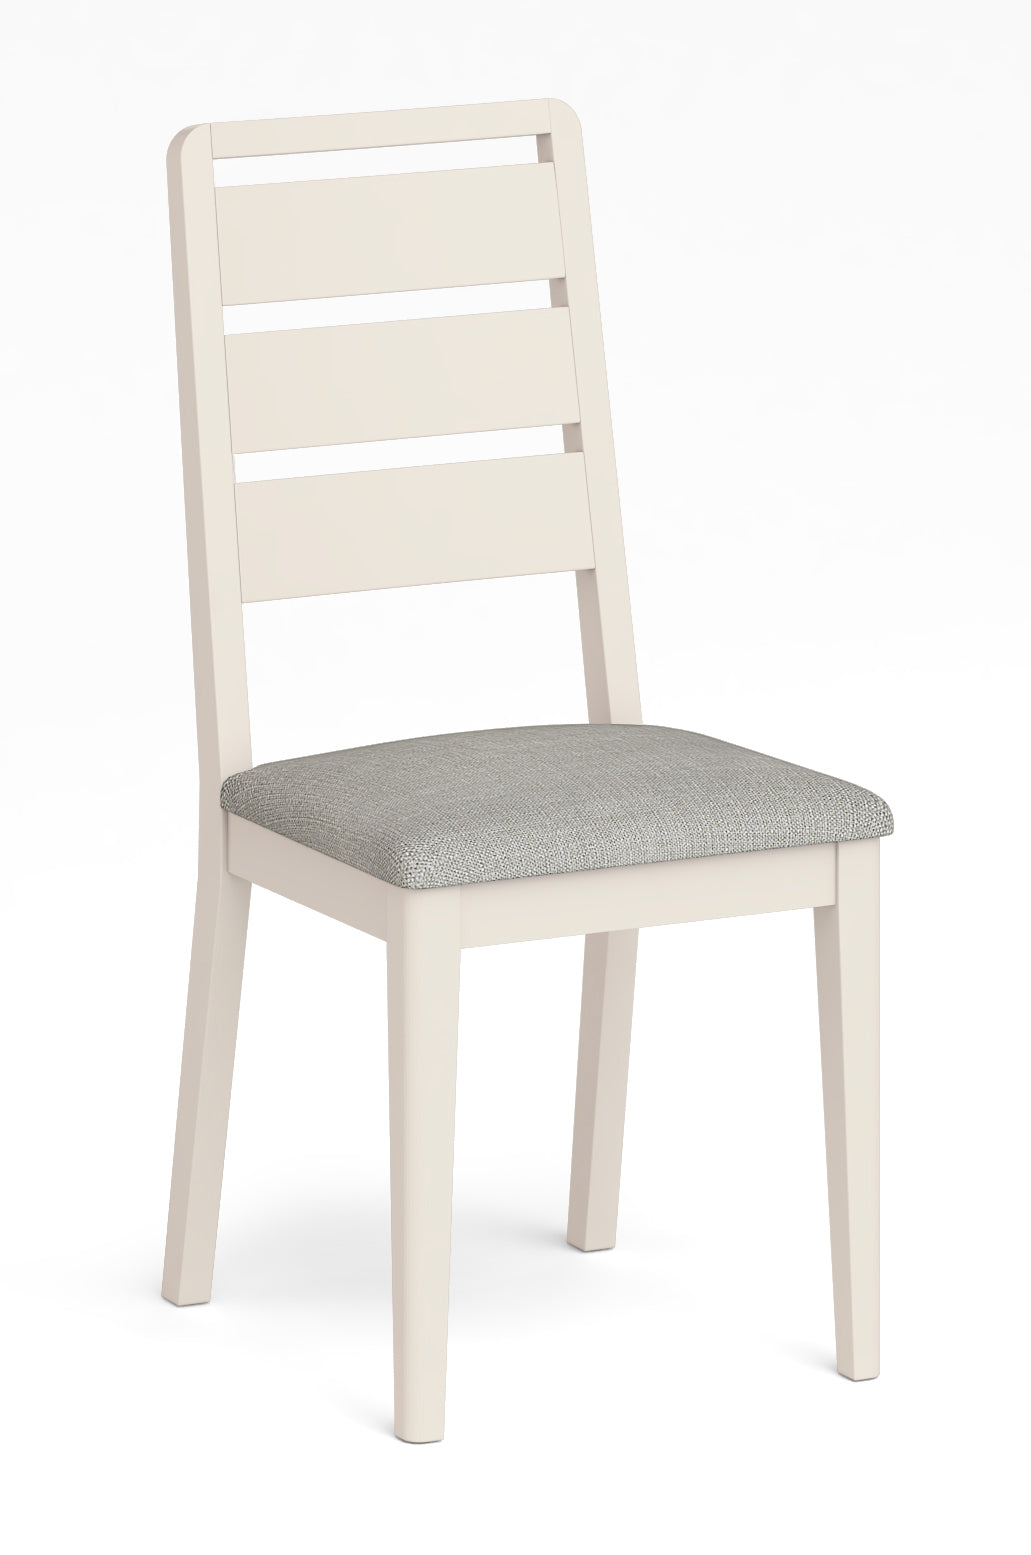 Bloxholm Dining Chairs - Painted